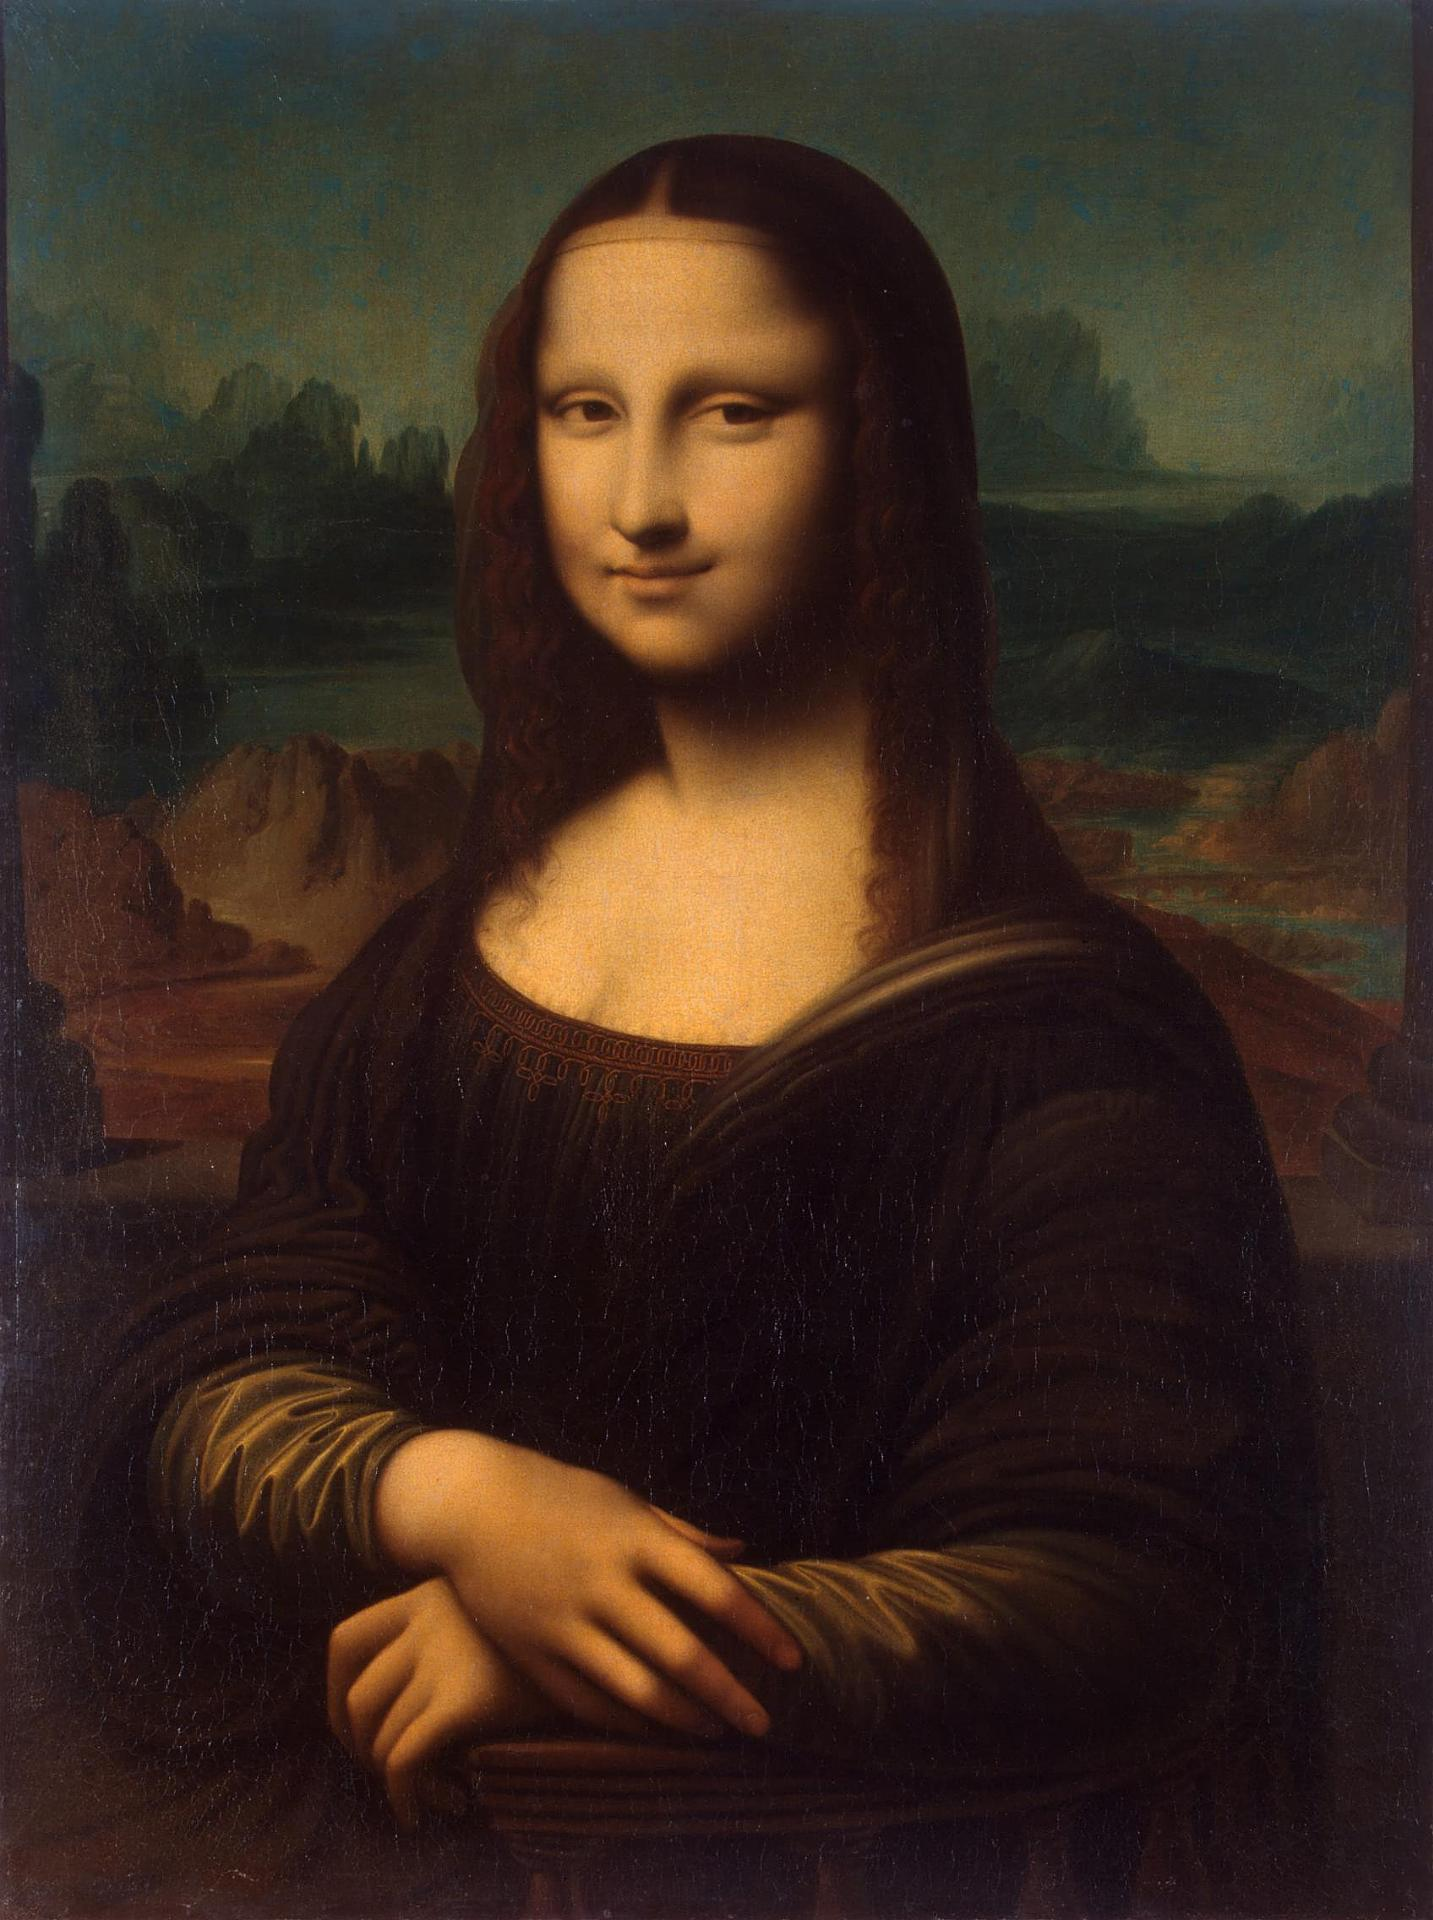 mona dating The other technique used to confirm if the painting is an earlier version of the mona lisa was carbon dating - also known as radiocarbon dating.